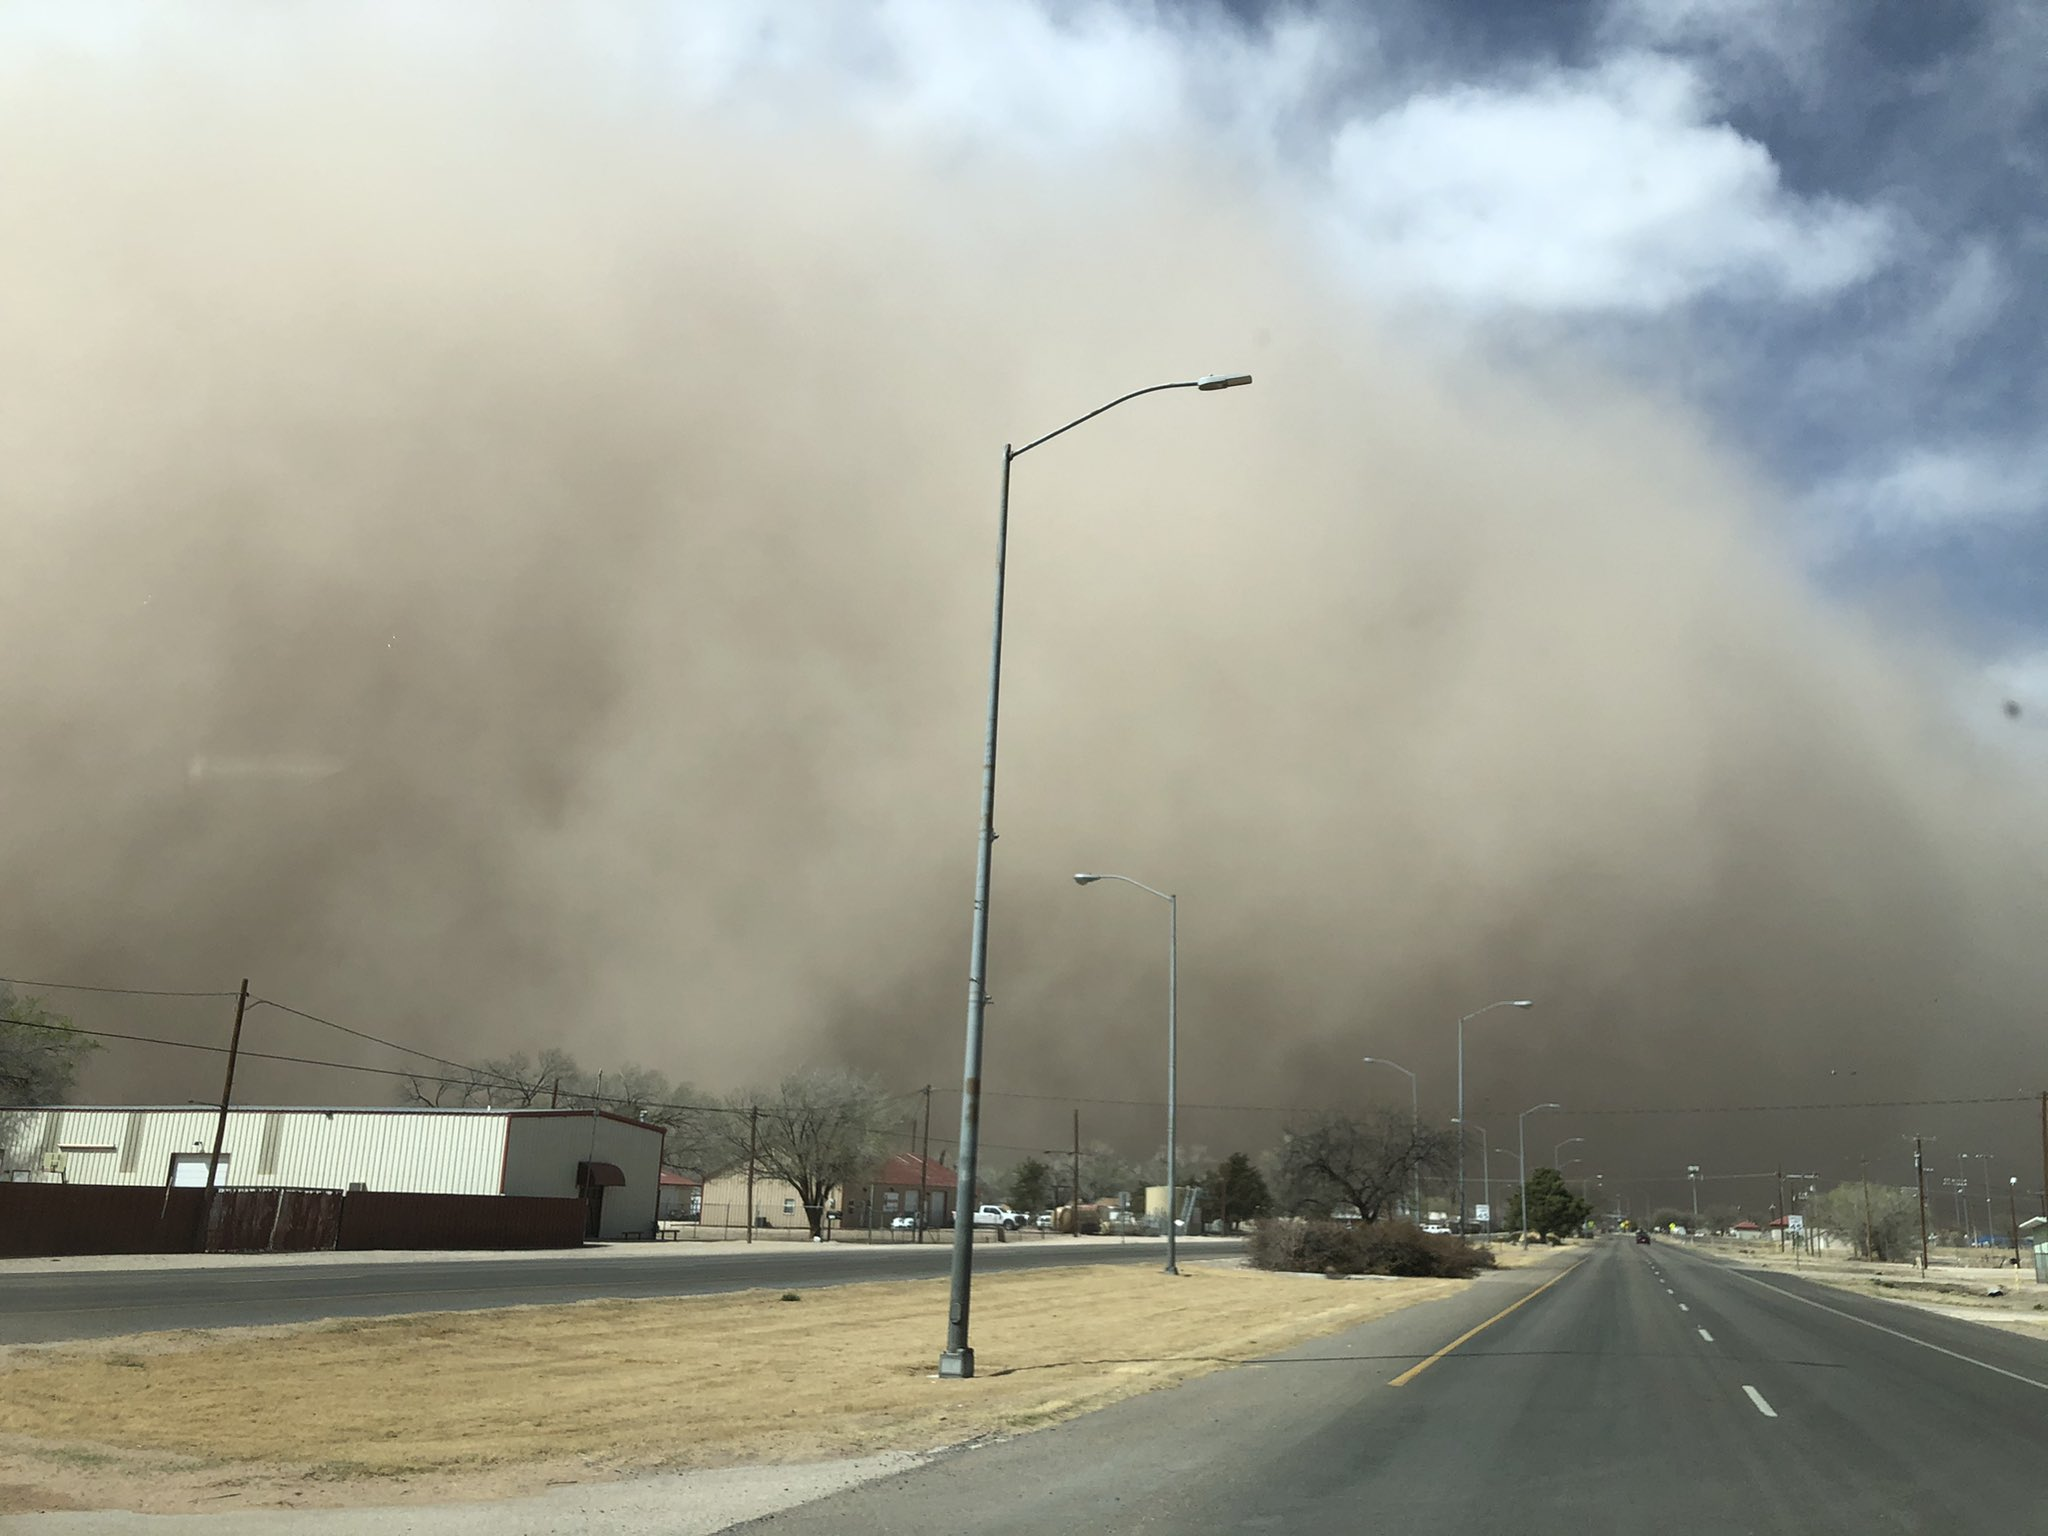 A wall of dust (haboob) rolling through Hobbs, NM, Monday afternoon (22 March). The picture is courtesy of @BLD_BTH on Twitter.